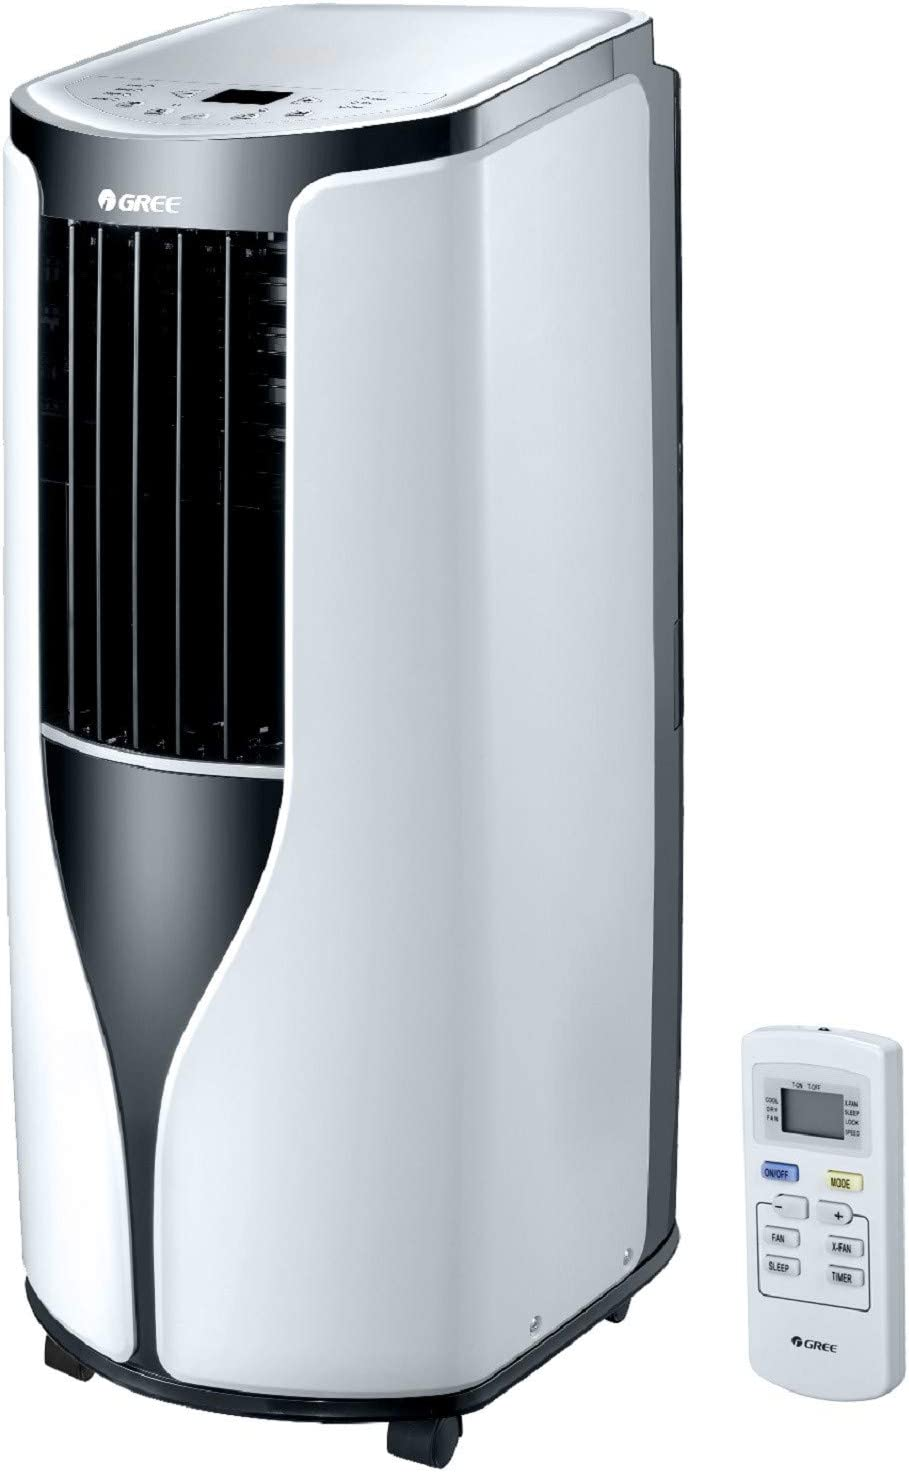 Gree 8000 BTU Air Conditioner Dehumidifier Fan Function お値打ち価格で with Mod 正規品送料無料